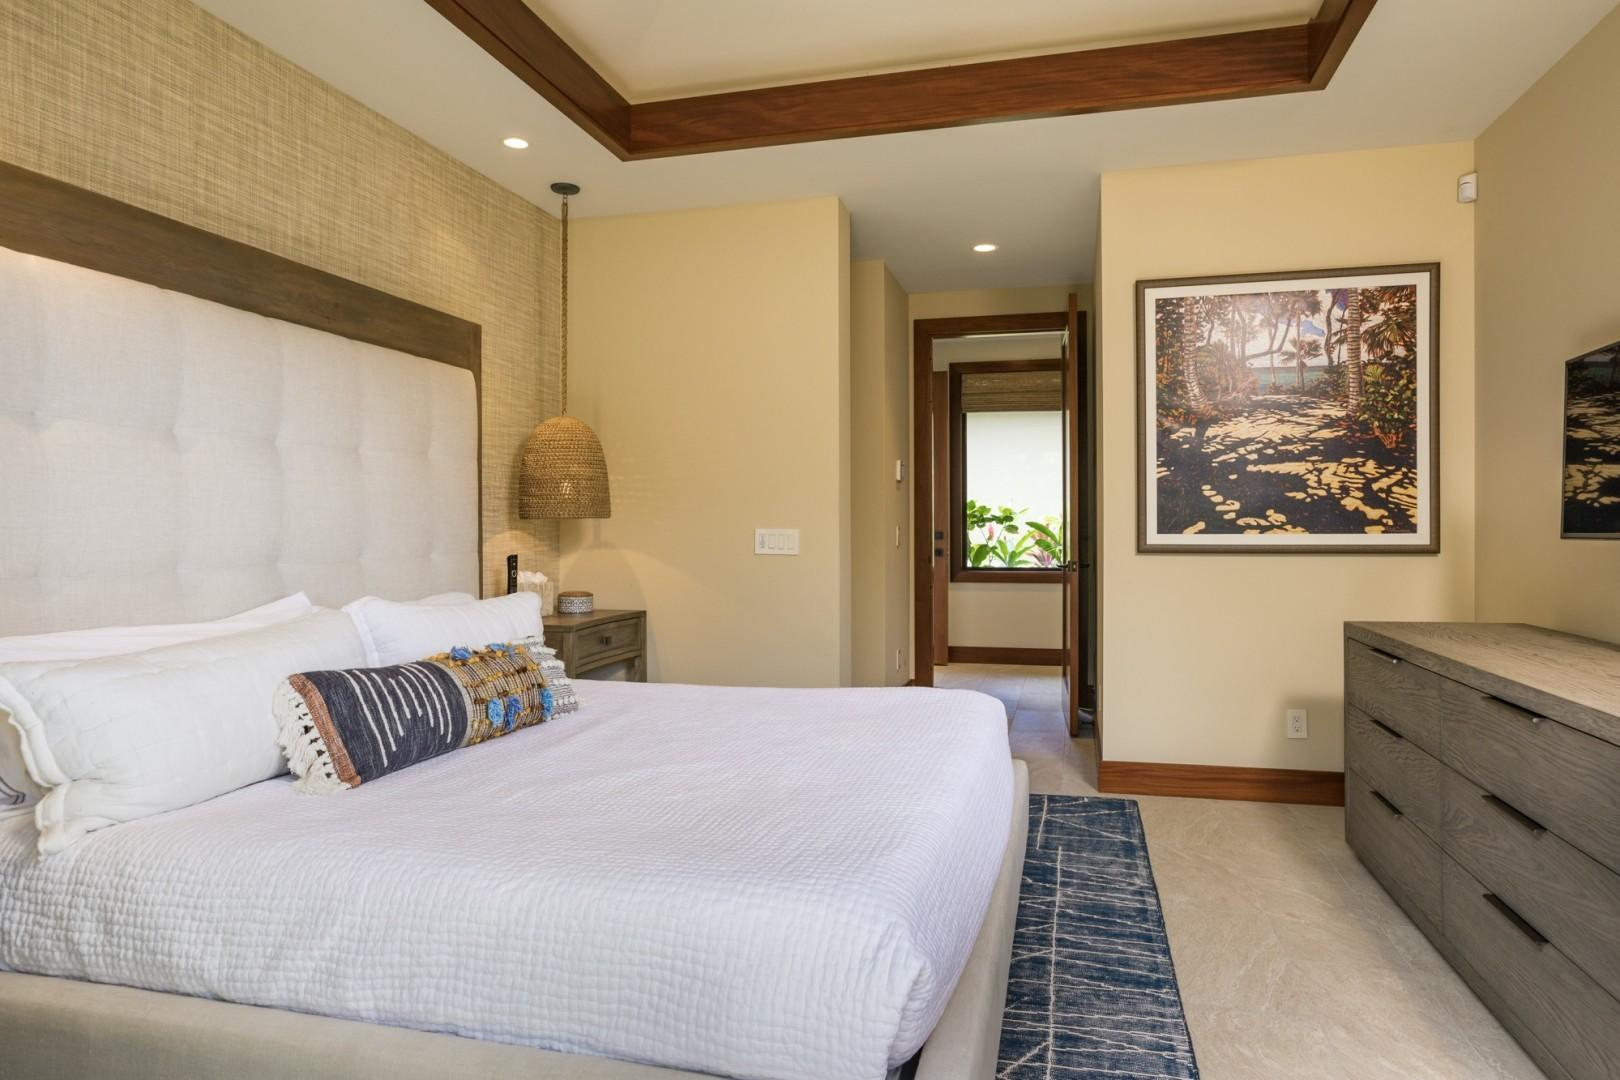 Reverse view of guest bedroom two featuring king-sized bed, wall mounted flat screen TV and valanced ceilings.